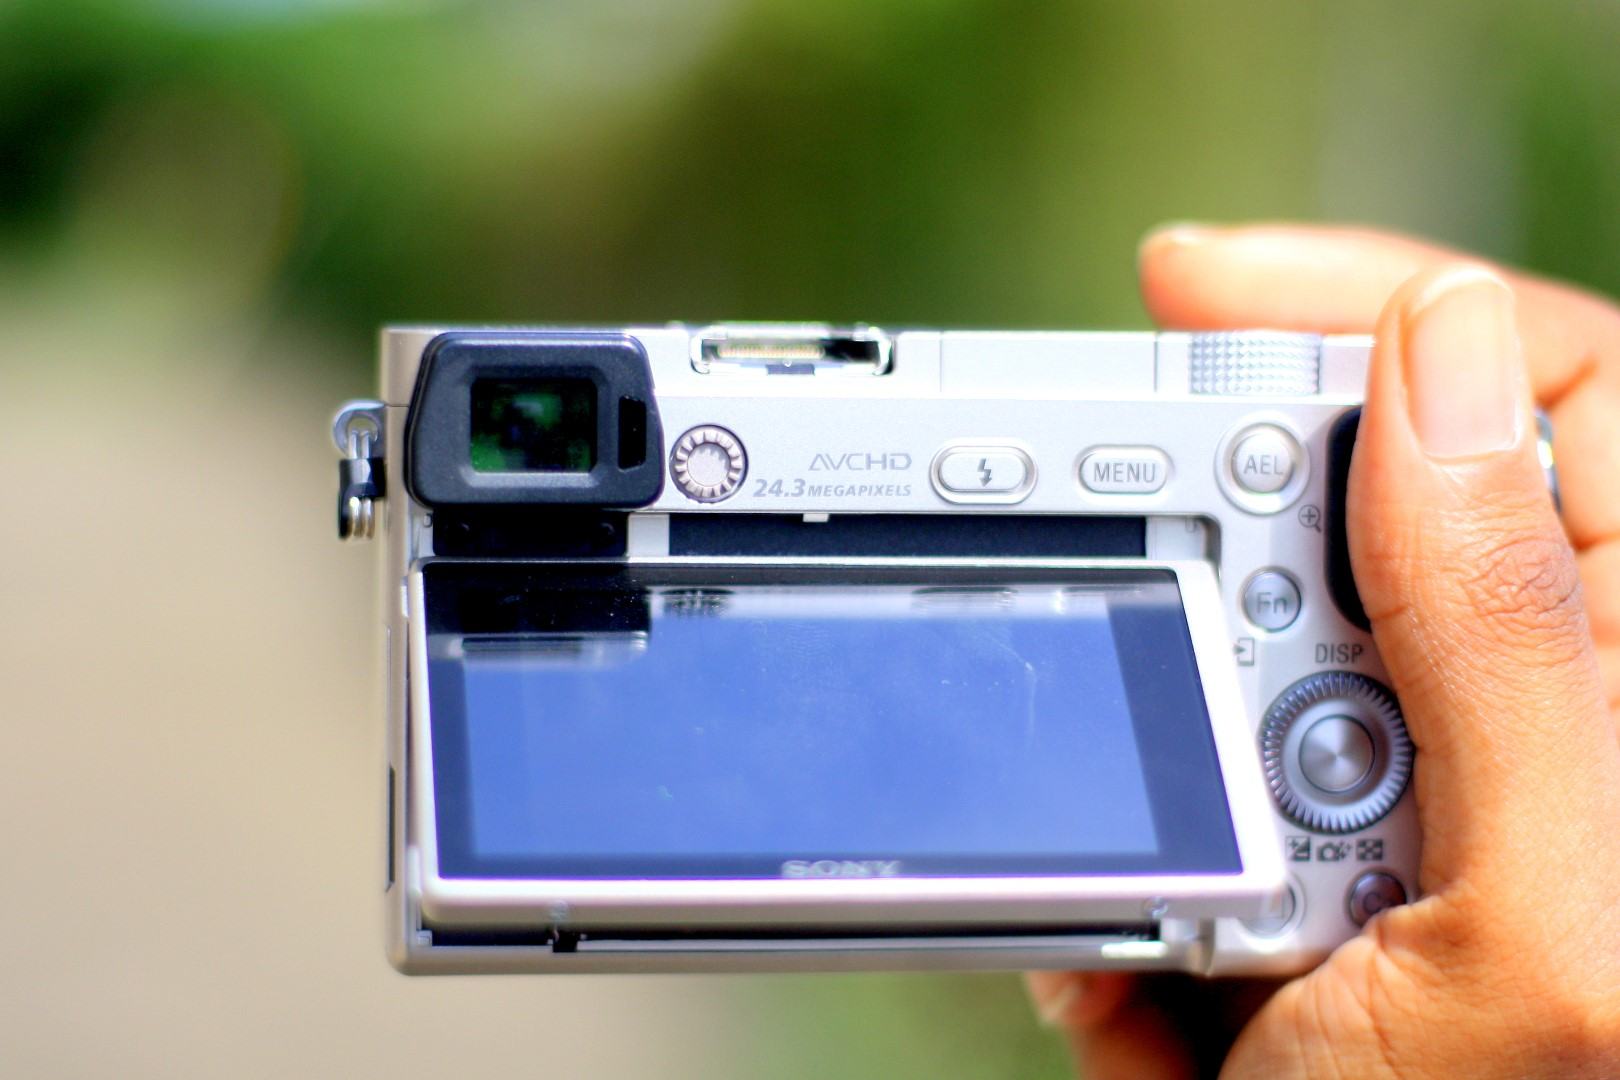 Sony Alpha A6000 front view showing tilted LCD Screen